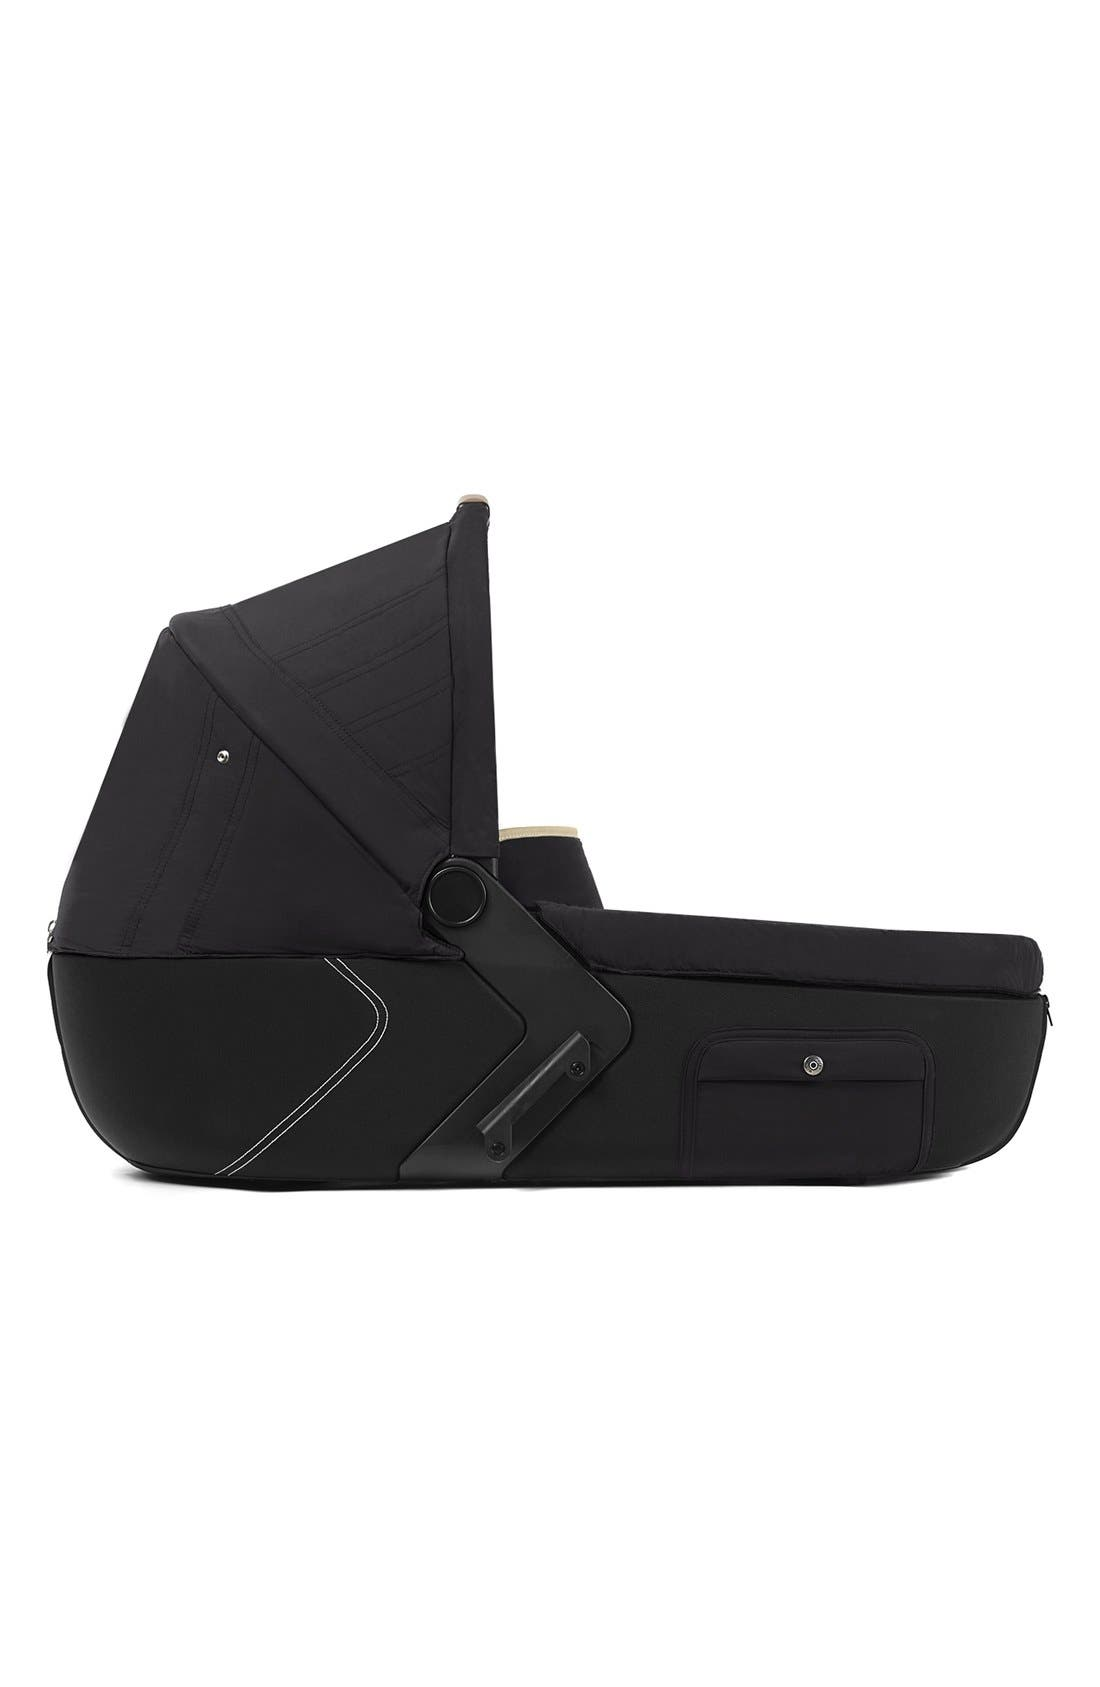 MUTSY 'Igo - Reflect Cosmo Black' Bassinet, Main, color, 001